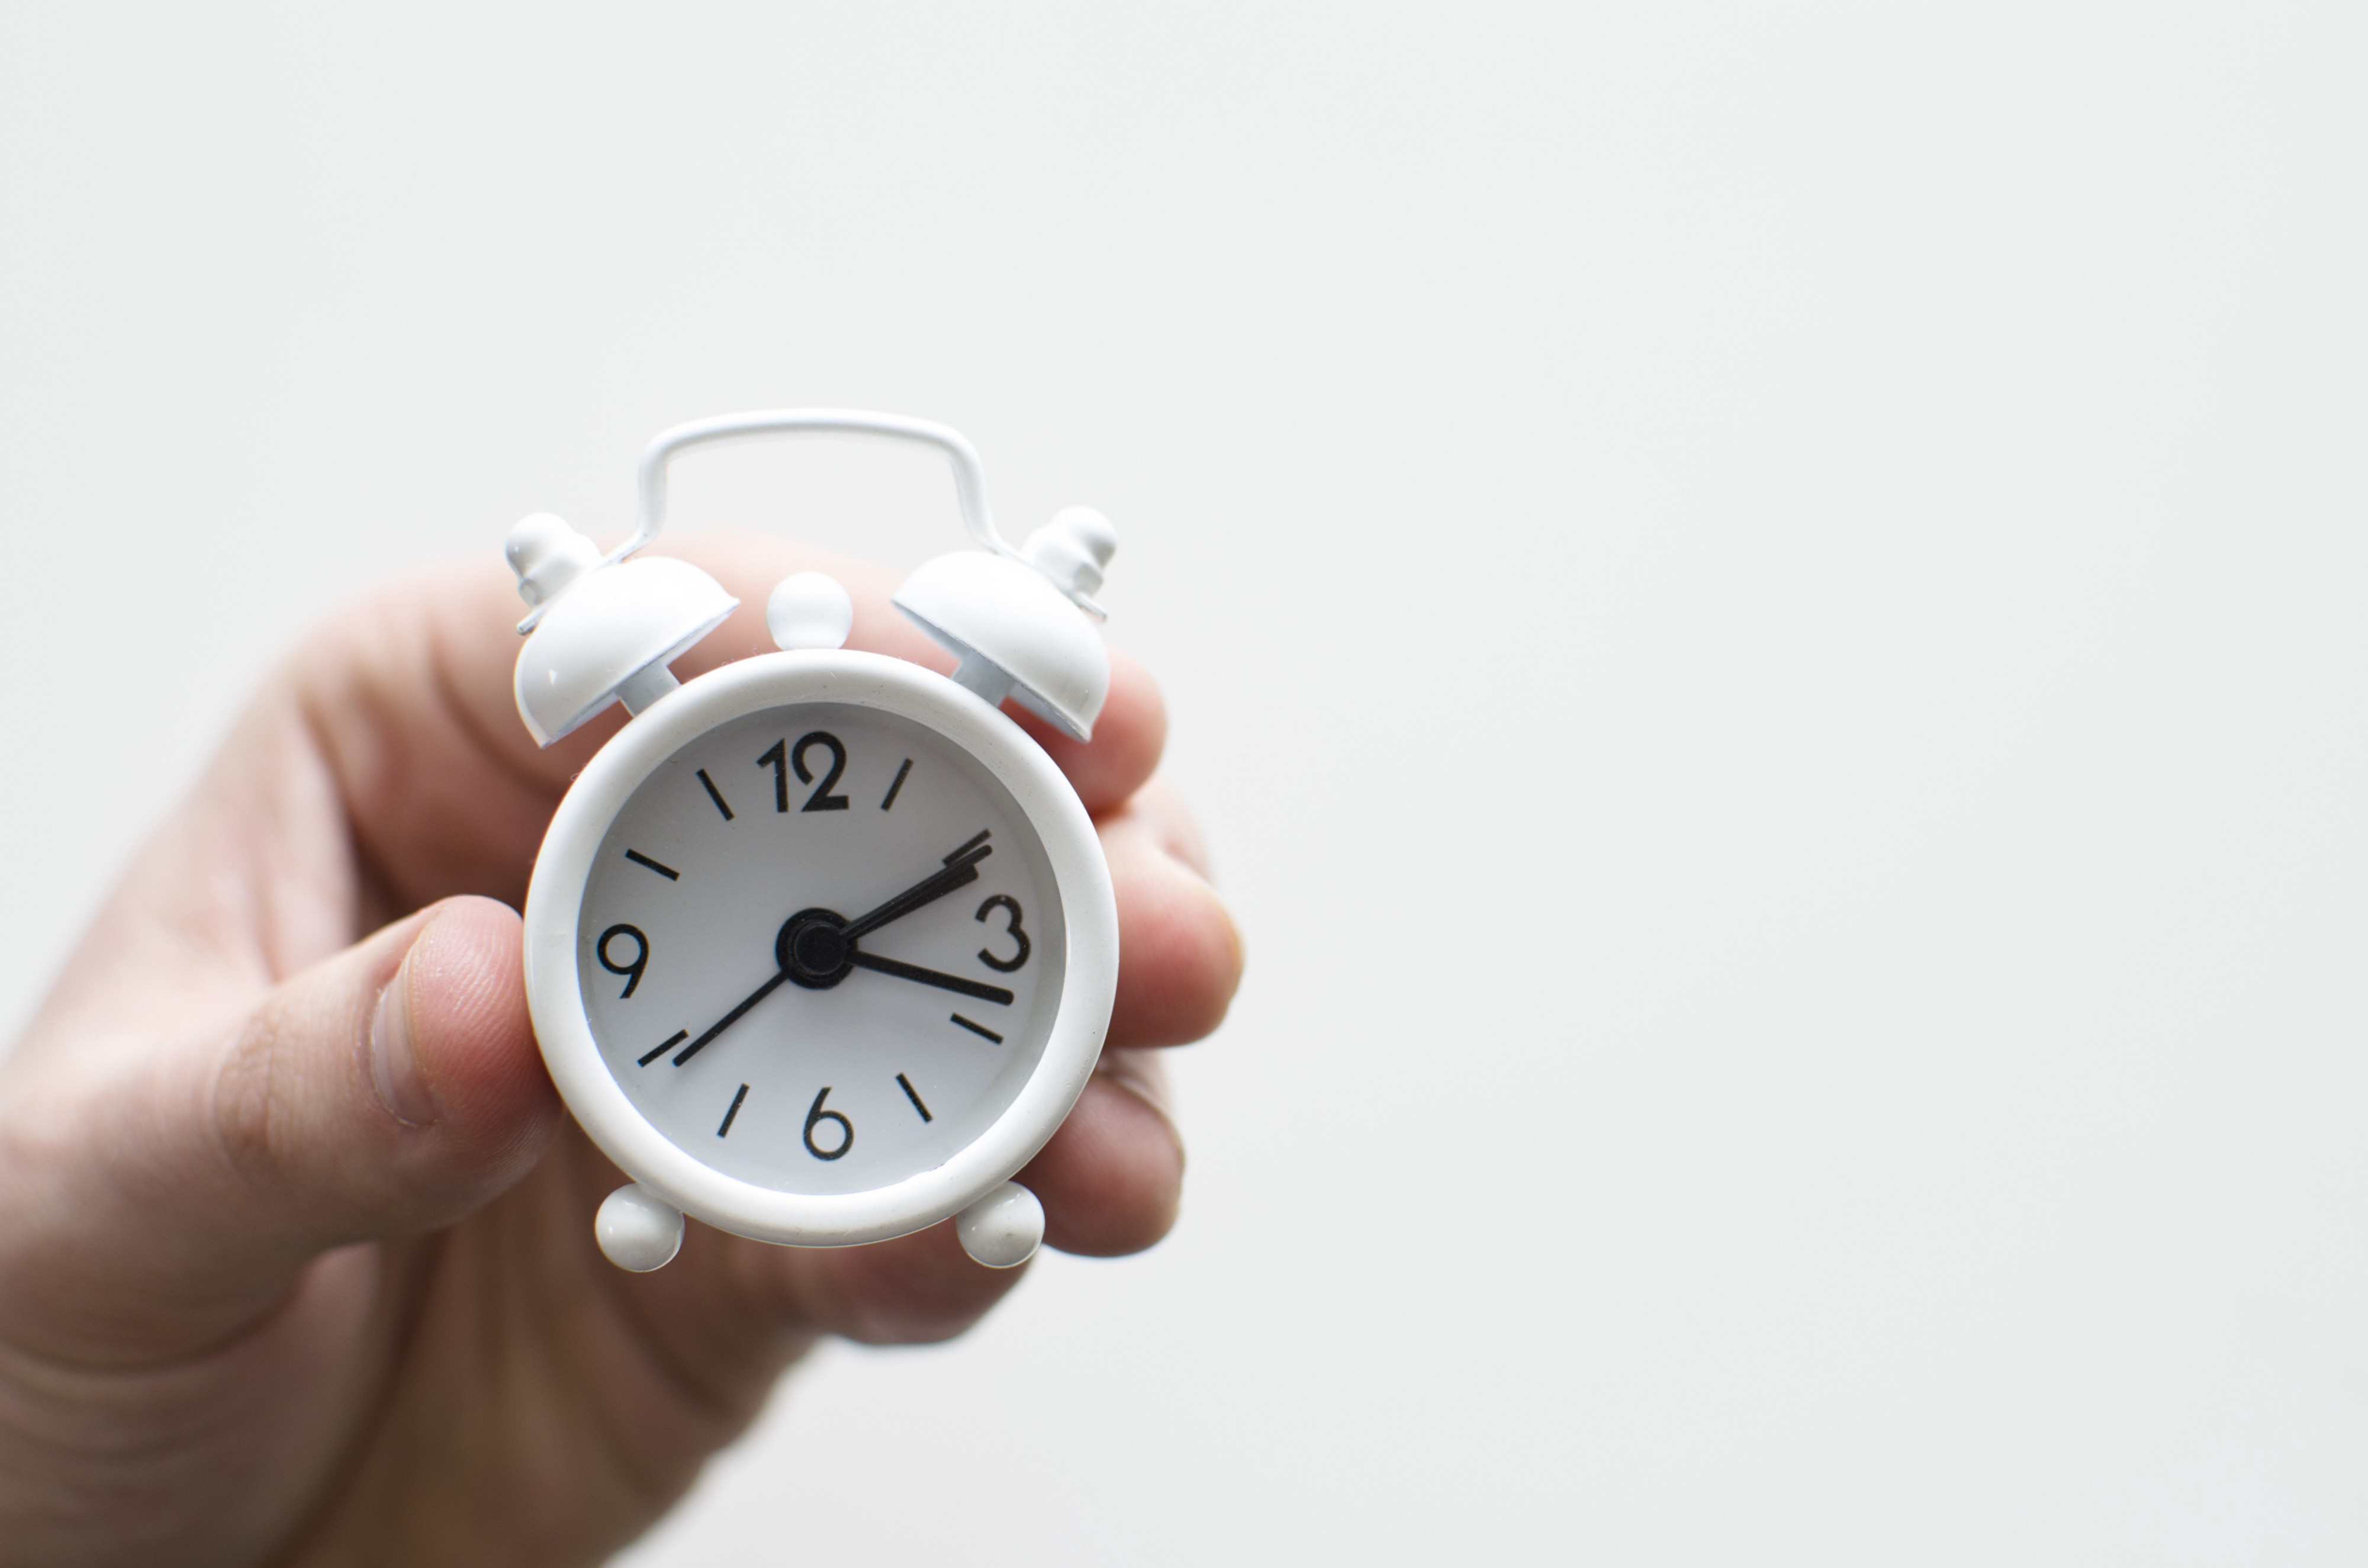 Time management skills are important for small business owners. A hand holds a small, ticking clock; time is in his hands.